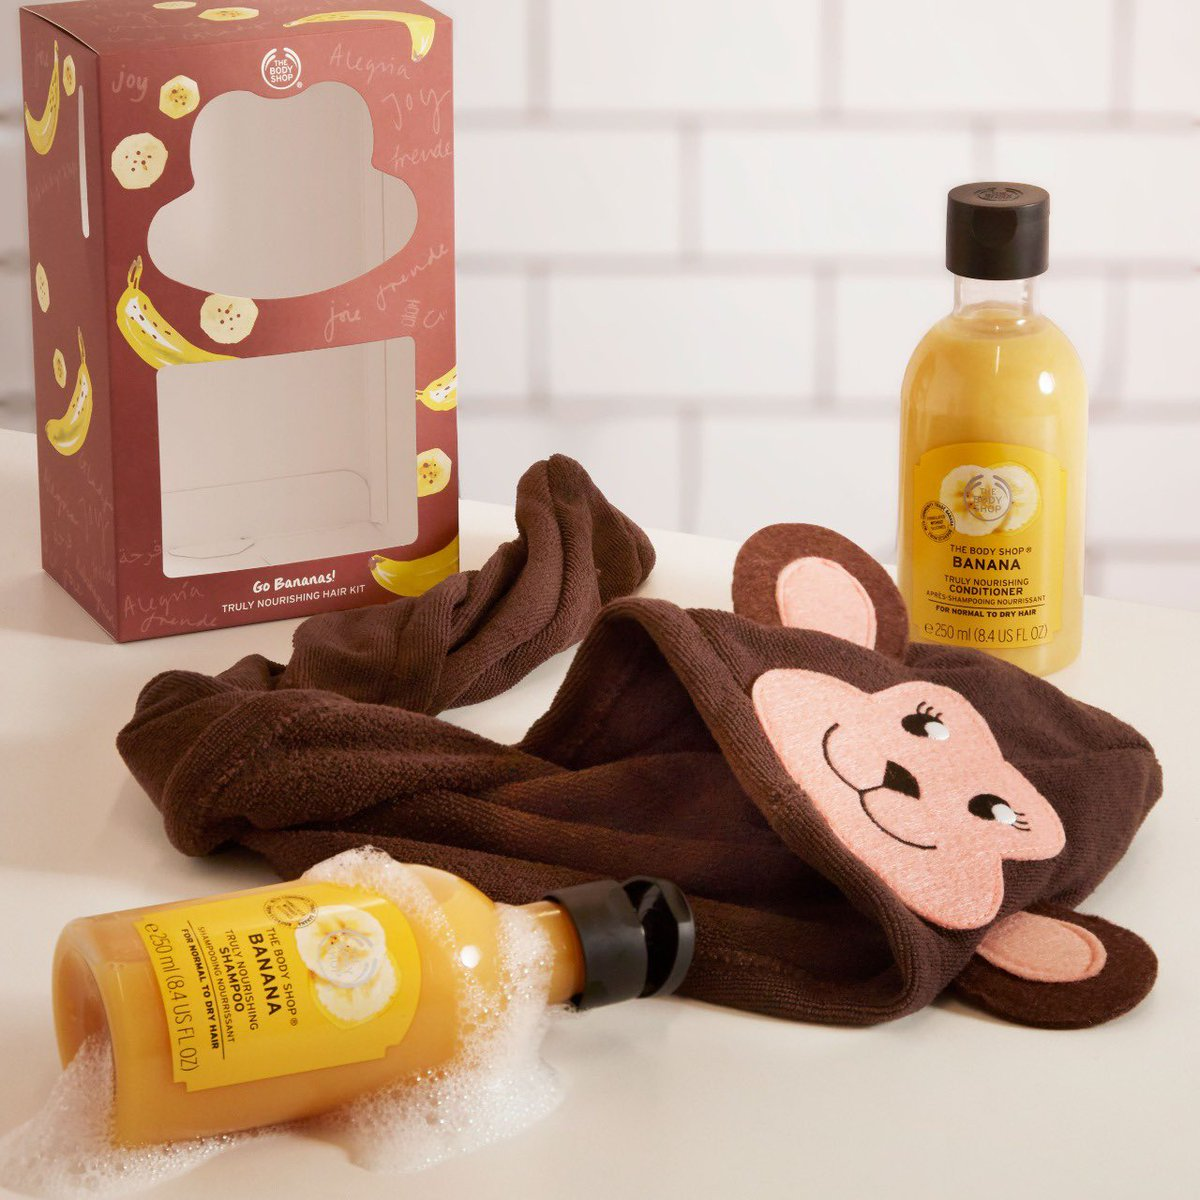 Our creamy Shampoo and Conditioner leave normal to dry hair feeling nourished with the addictive aroma of ripe bananas and woody coconut. Complete with a monkey hair wrap. Shop Online, in-store or via home delivery call +917042004412 #TBSInd #GiveJoy #FestiveGifting #GiftBox